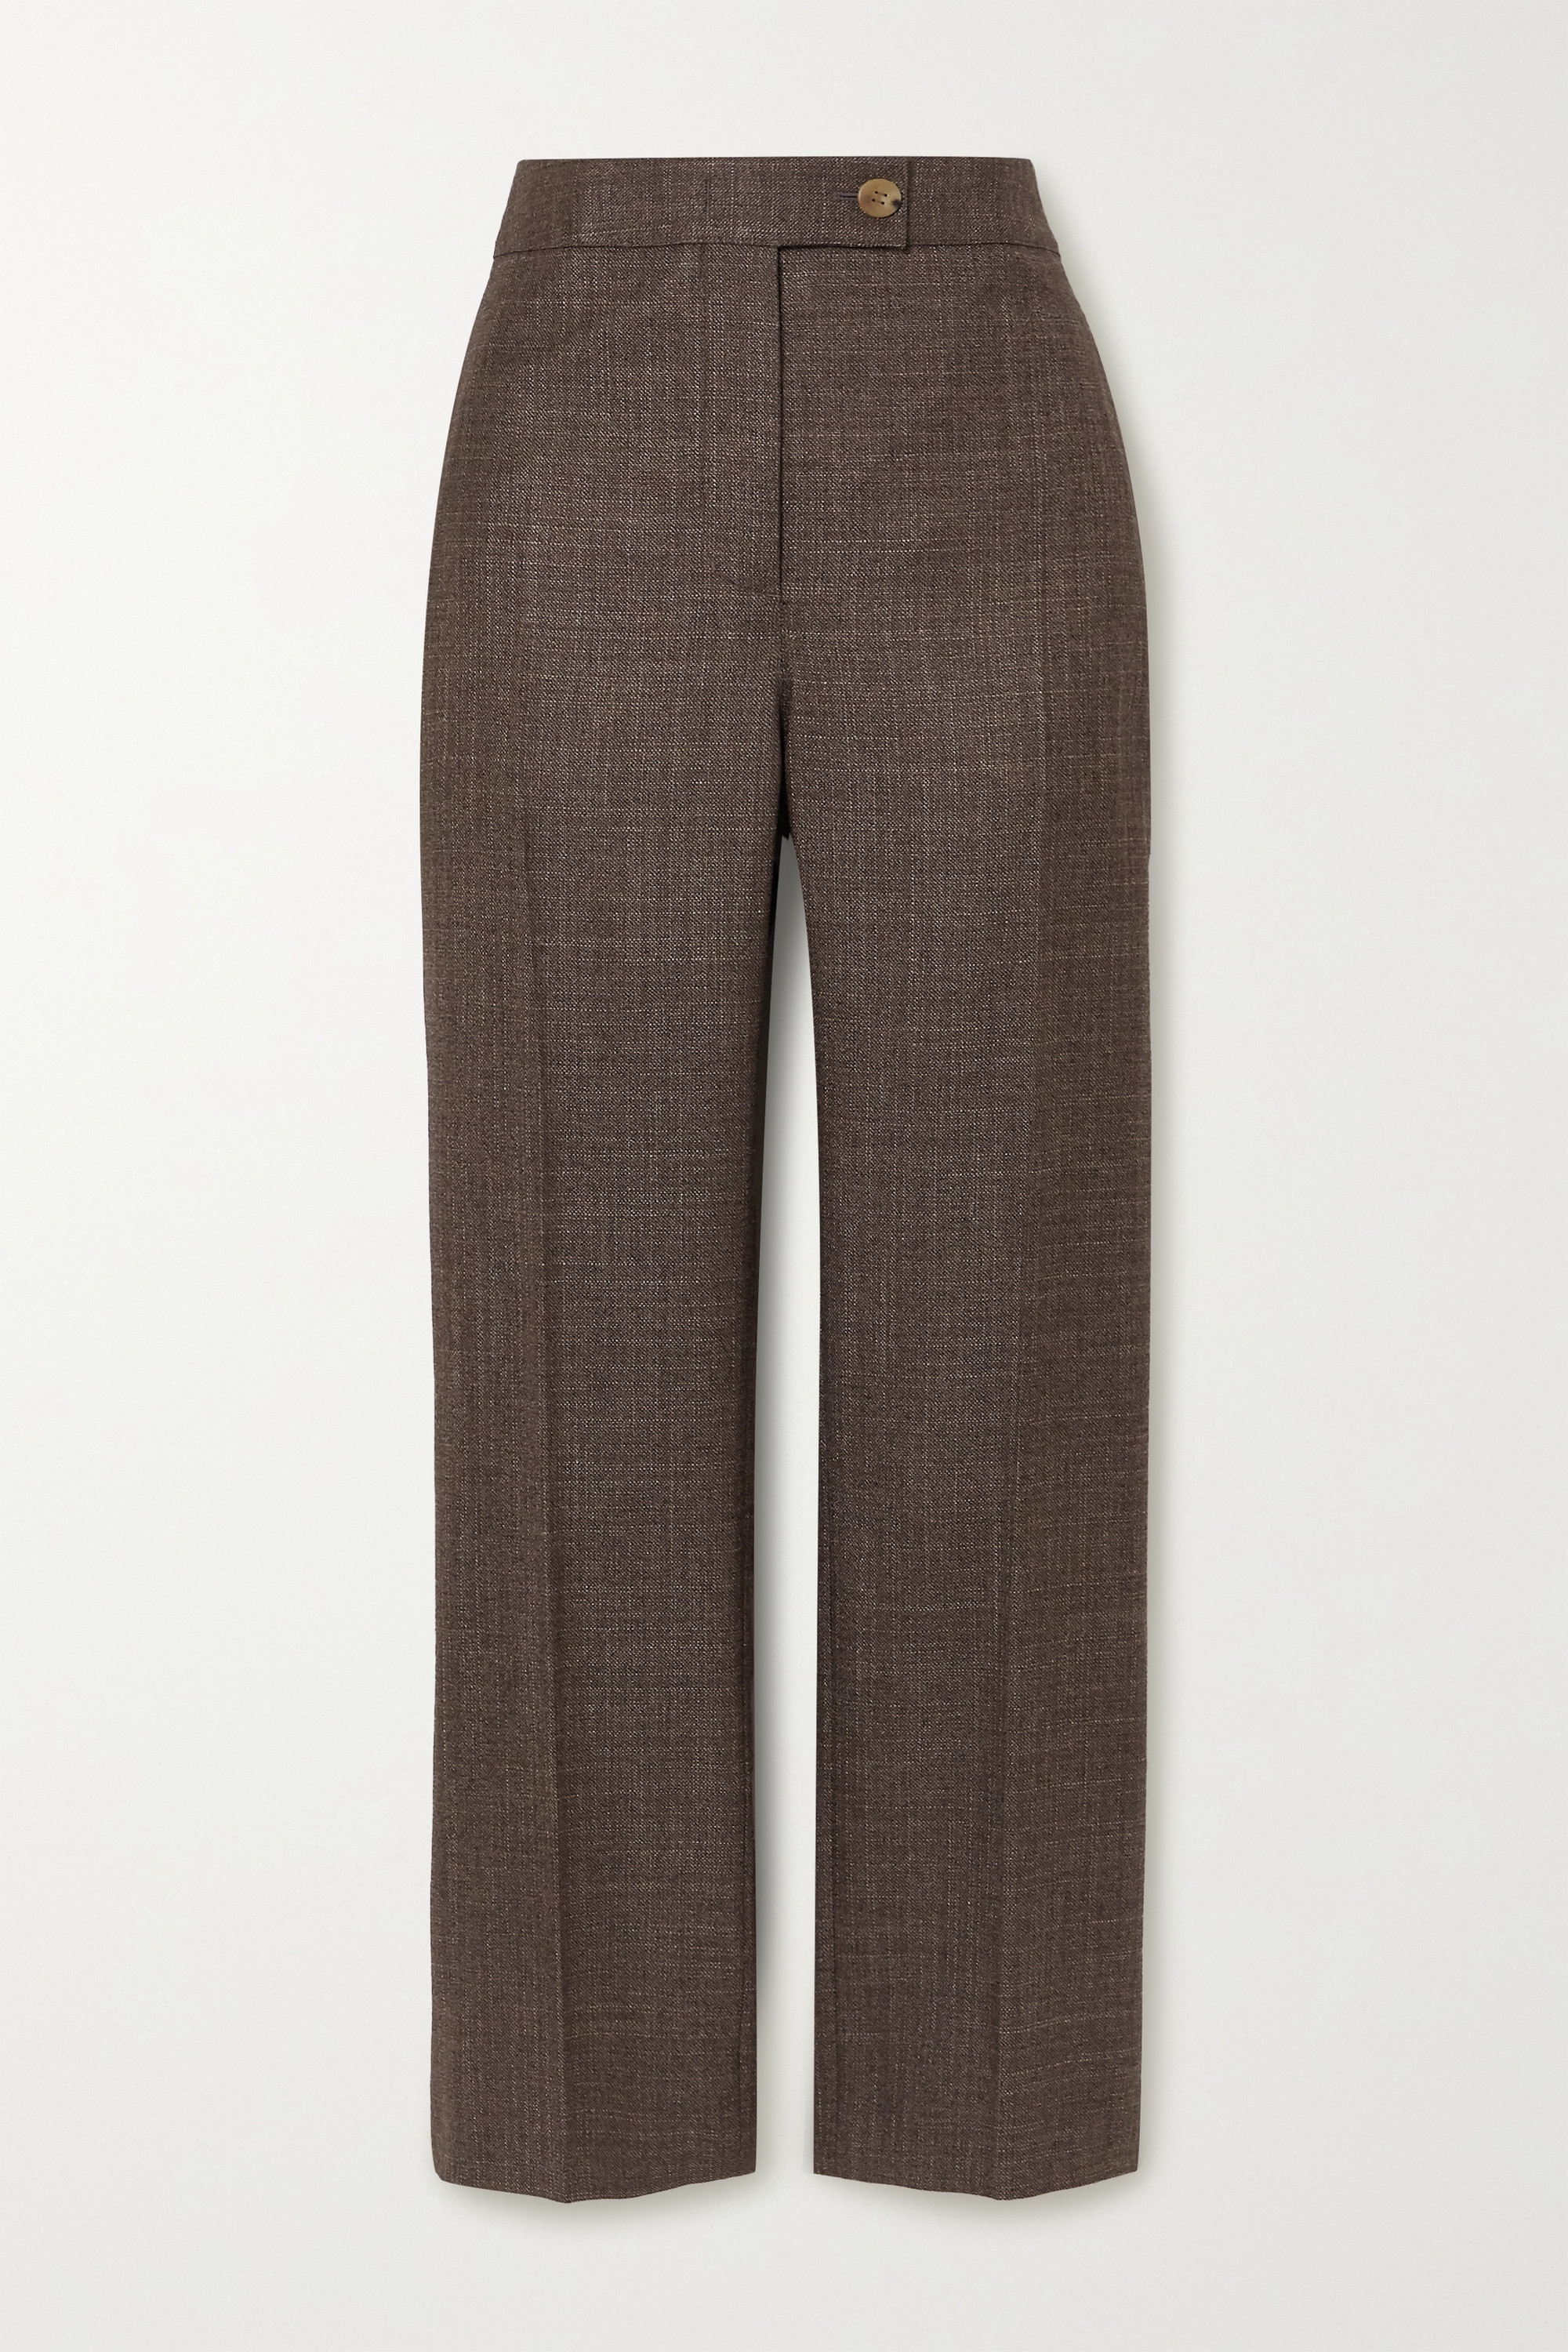 CASASOLA + NET SUSTAIN Treviso silk and cashmere-blend straight-leg pants